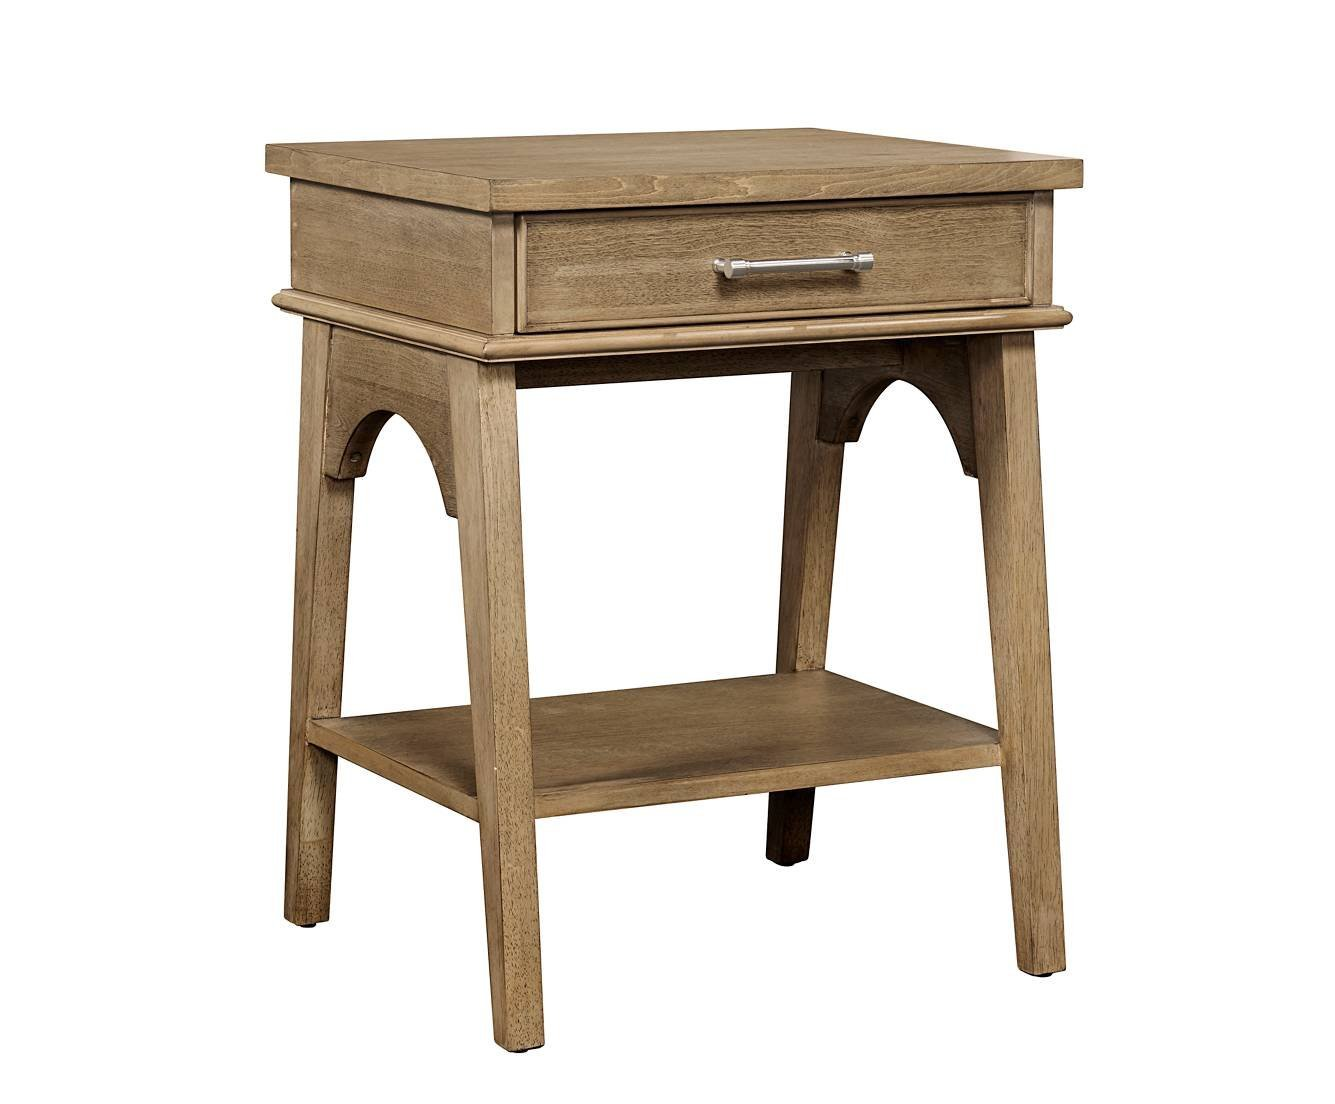 Stone & Leigh Chelsea Square Nightstand in French Toast